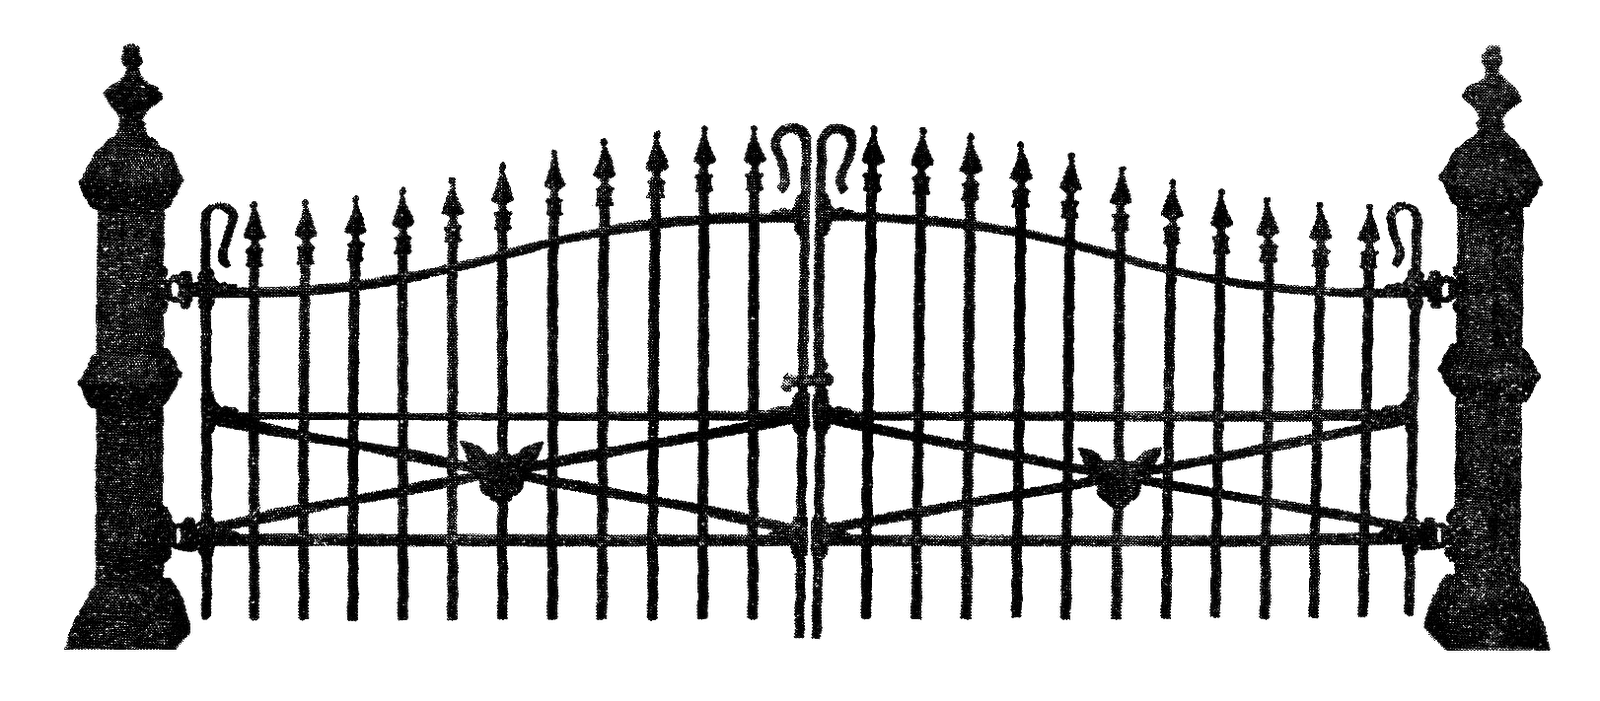 Antique Images Free Antique Graphic For Halloween Spooky Wrought Iron Fence Illustration With Black Cat Head Iron Fence Antique Images Halloween Silhouettes